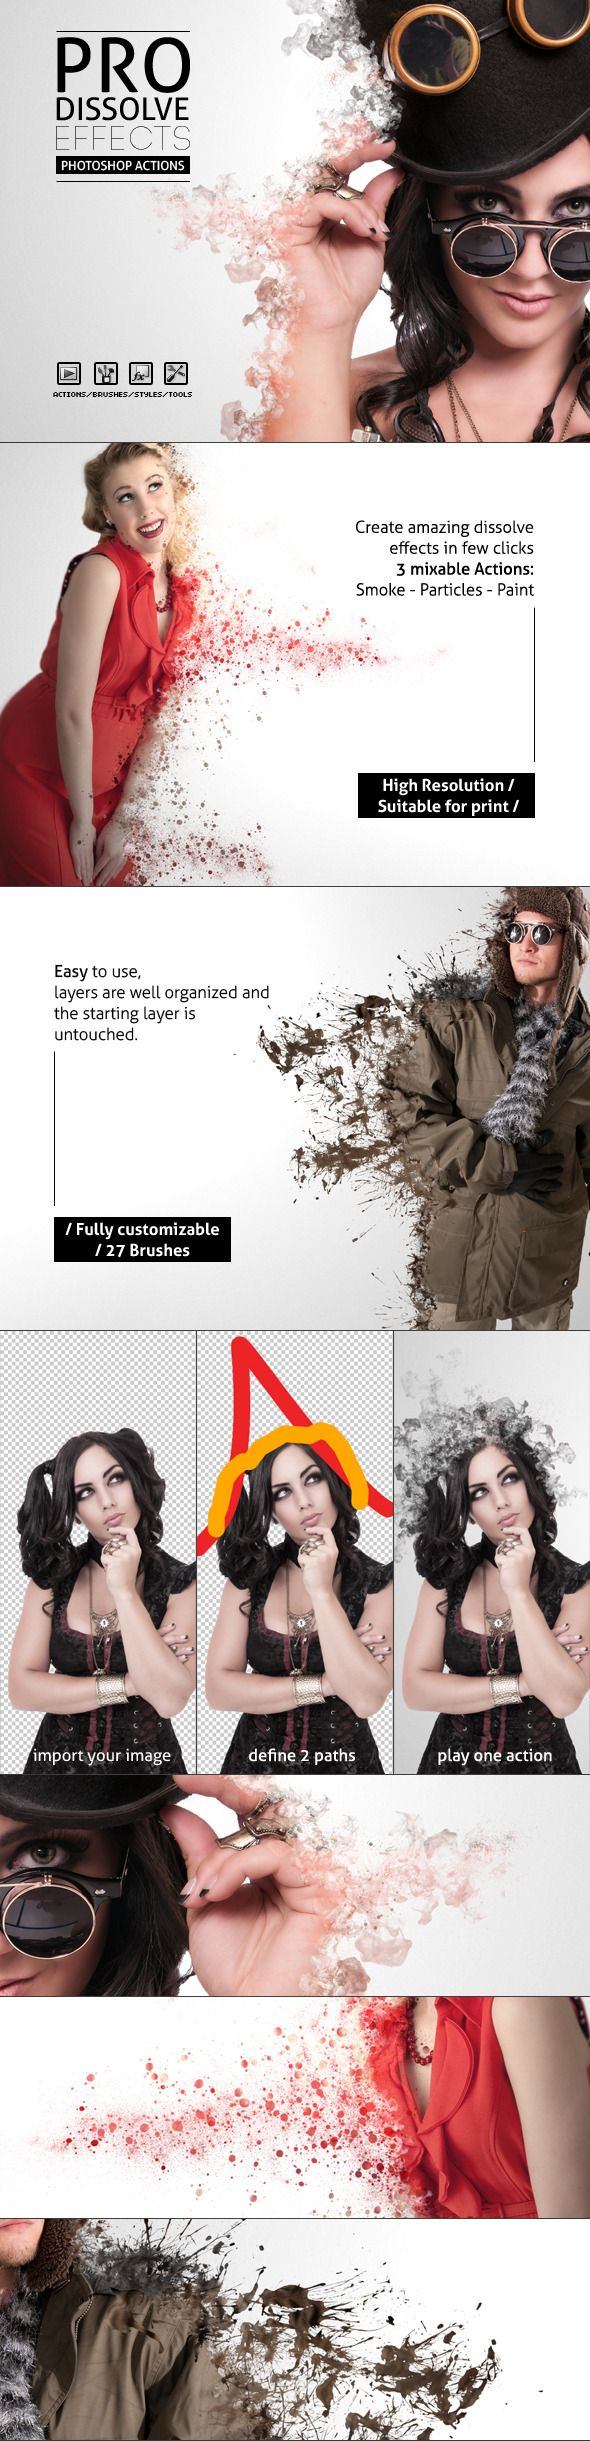 Pro Dissolve Effects - Photoshop Actions - Photoshop Add-ons